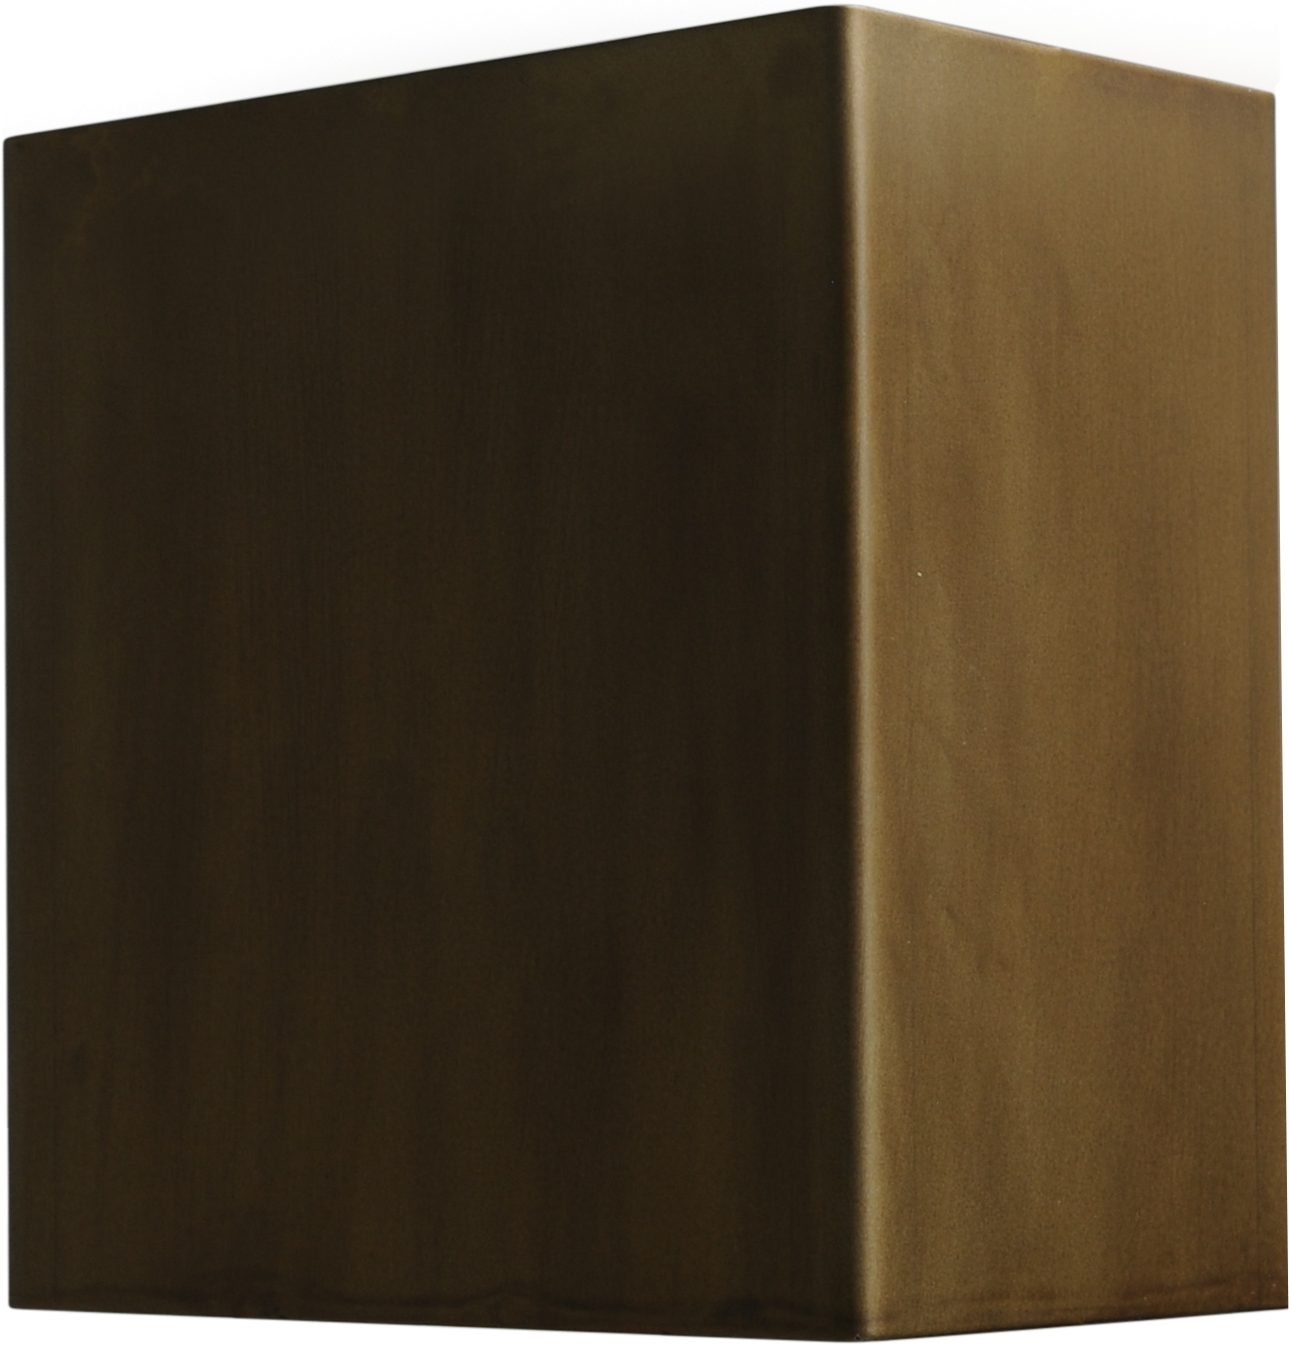 Metallico WL METALLICO ANTIQUE BRASS 12X10CM